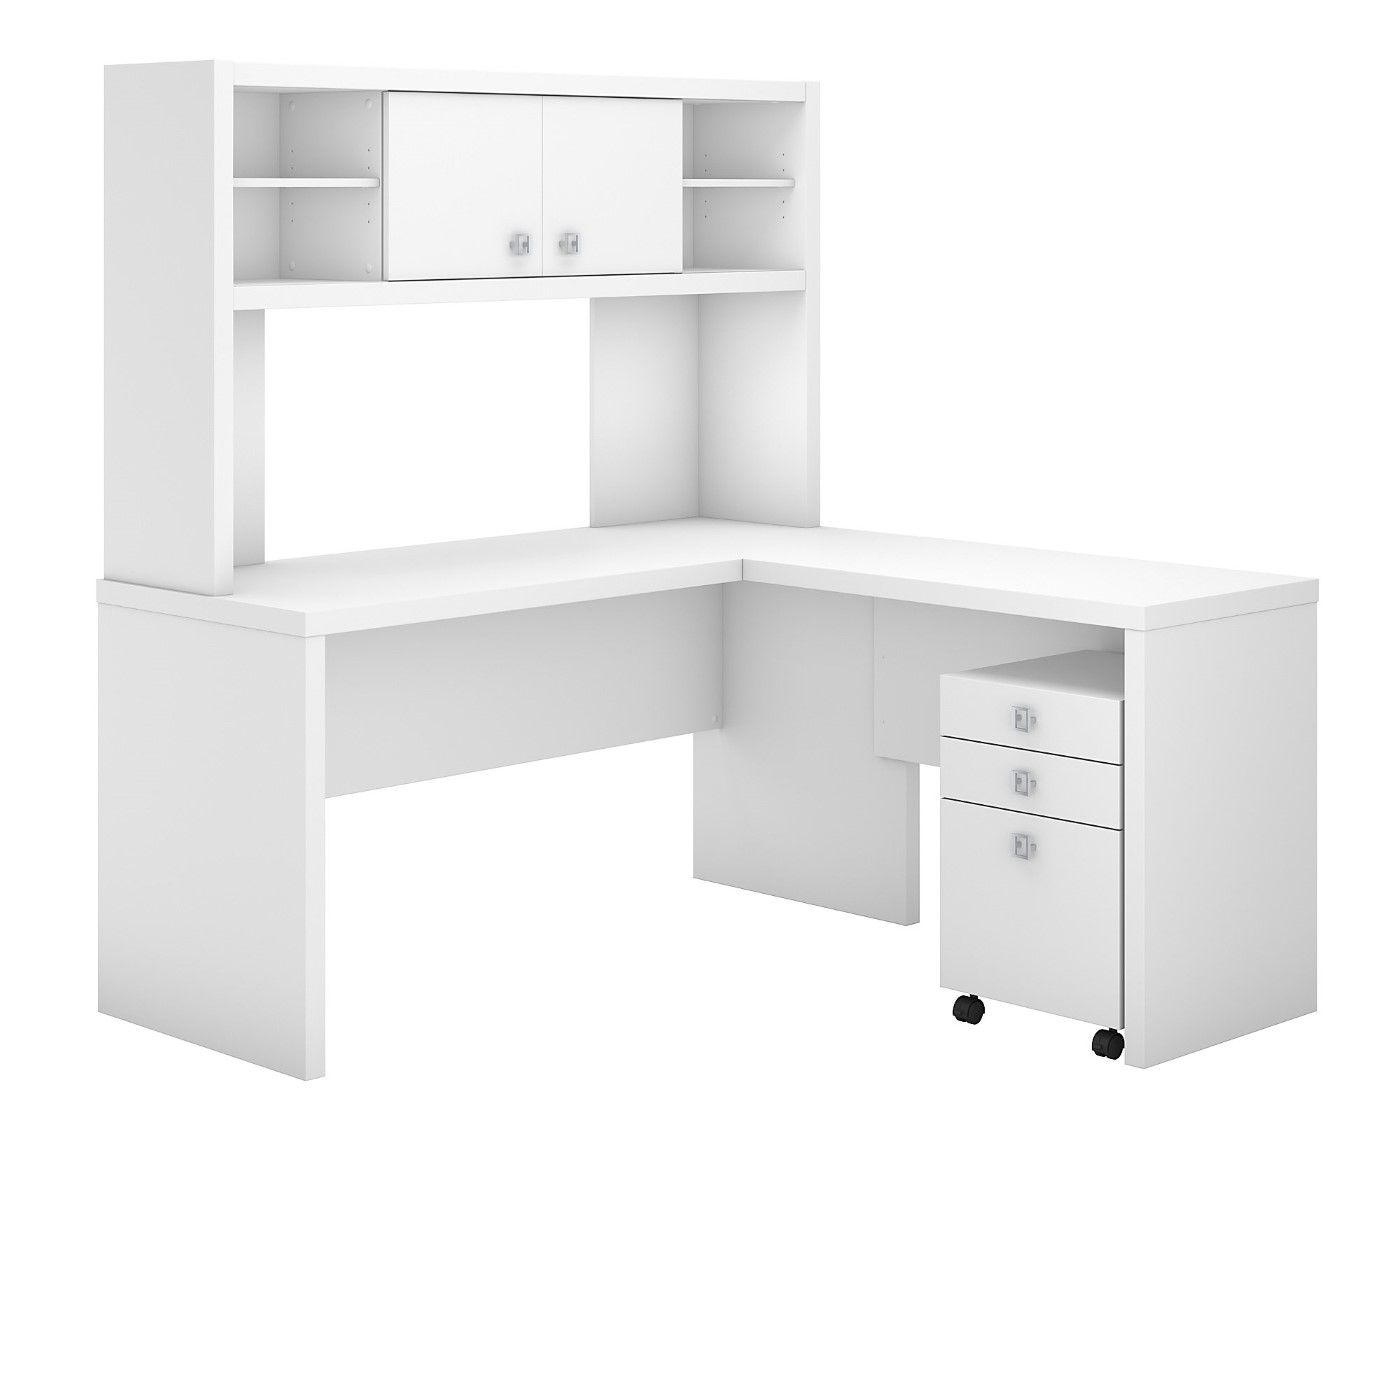 OFFICE BY KATHY IRELAND� ECHO L SHAPED DESK WITH HUTCH AND MOBILE FILE CABINET. FREE SHIPPING